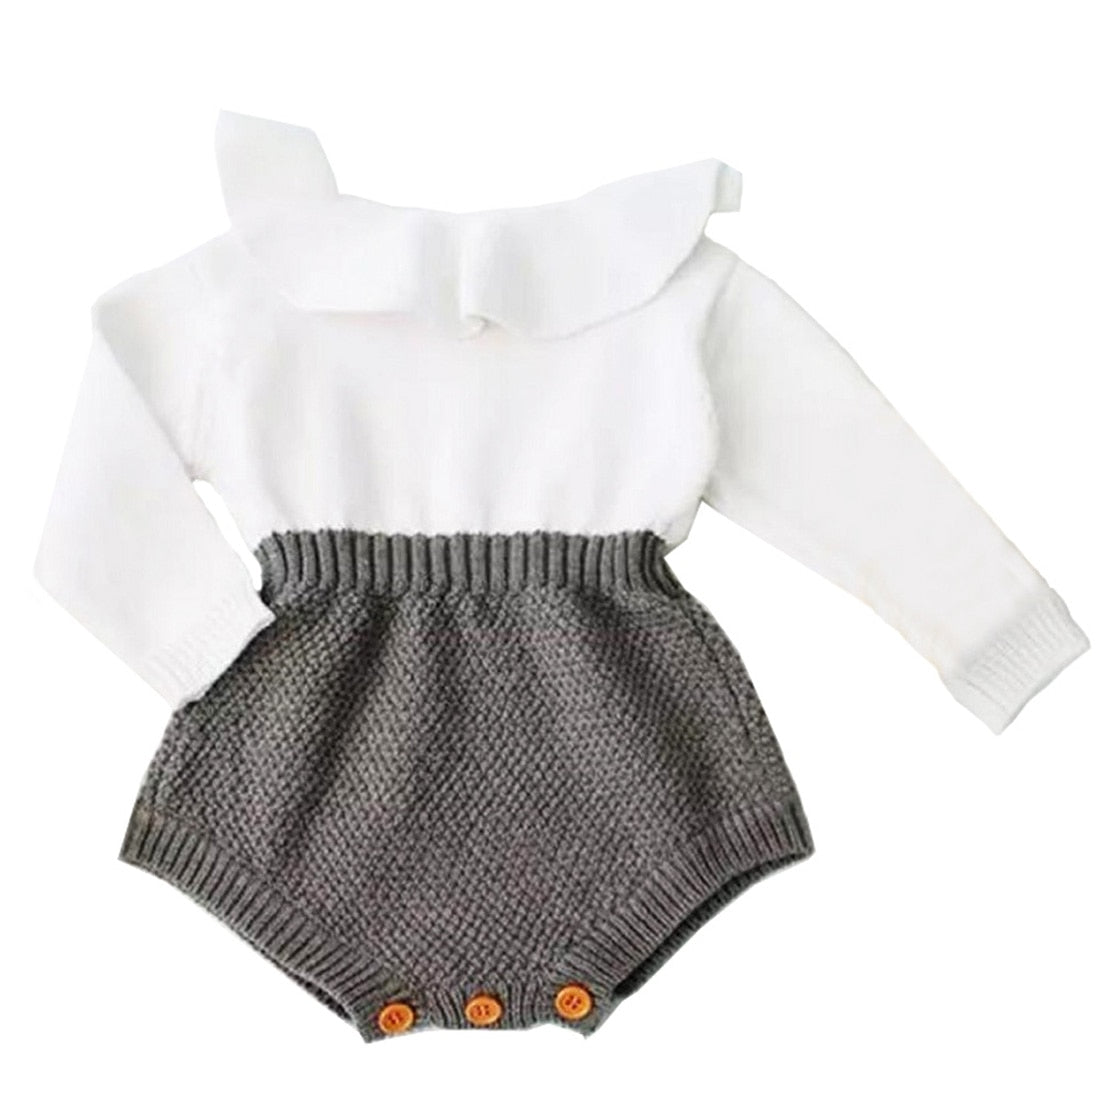 Karina knitted romper ♥ size 3m - 18m